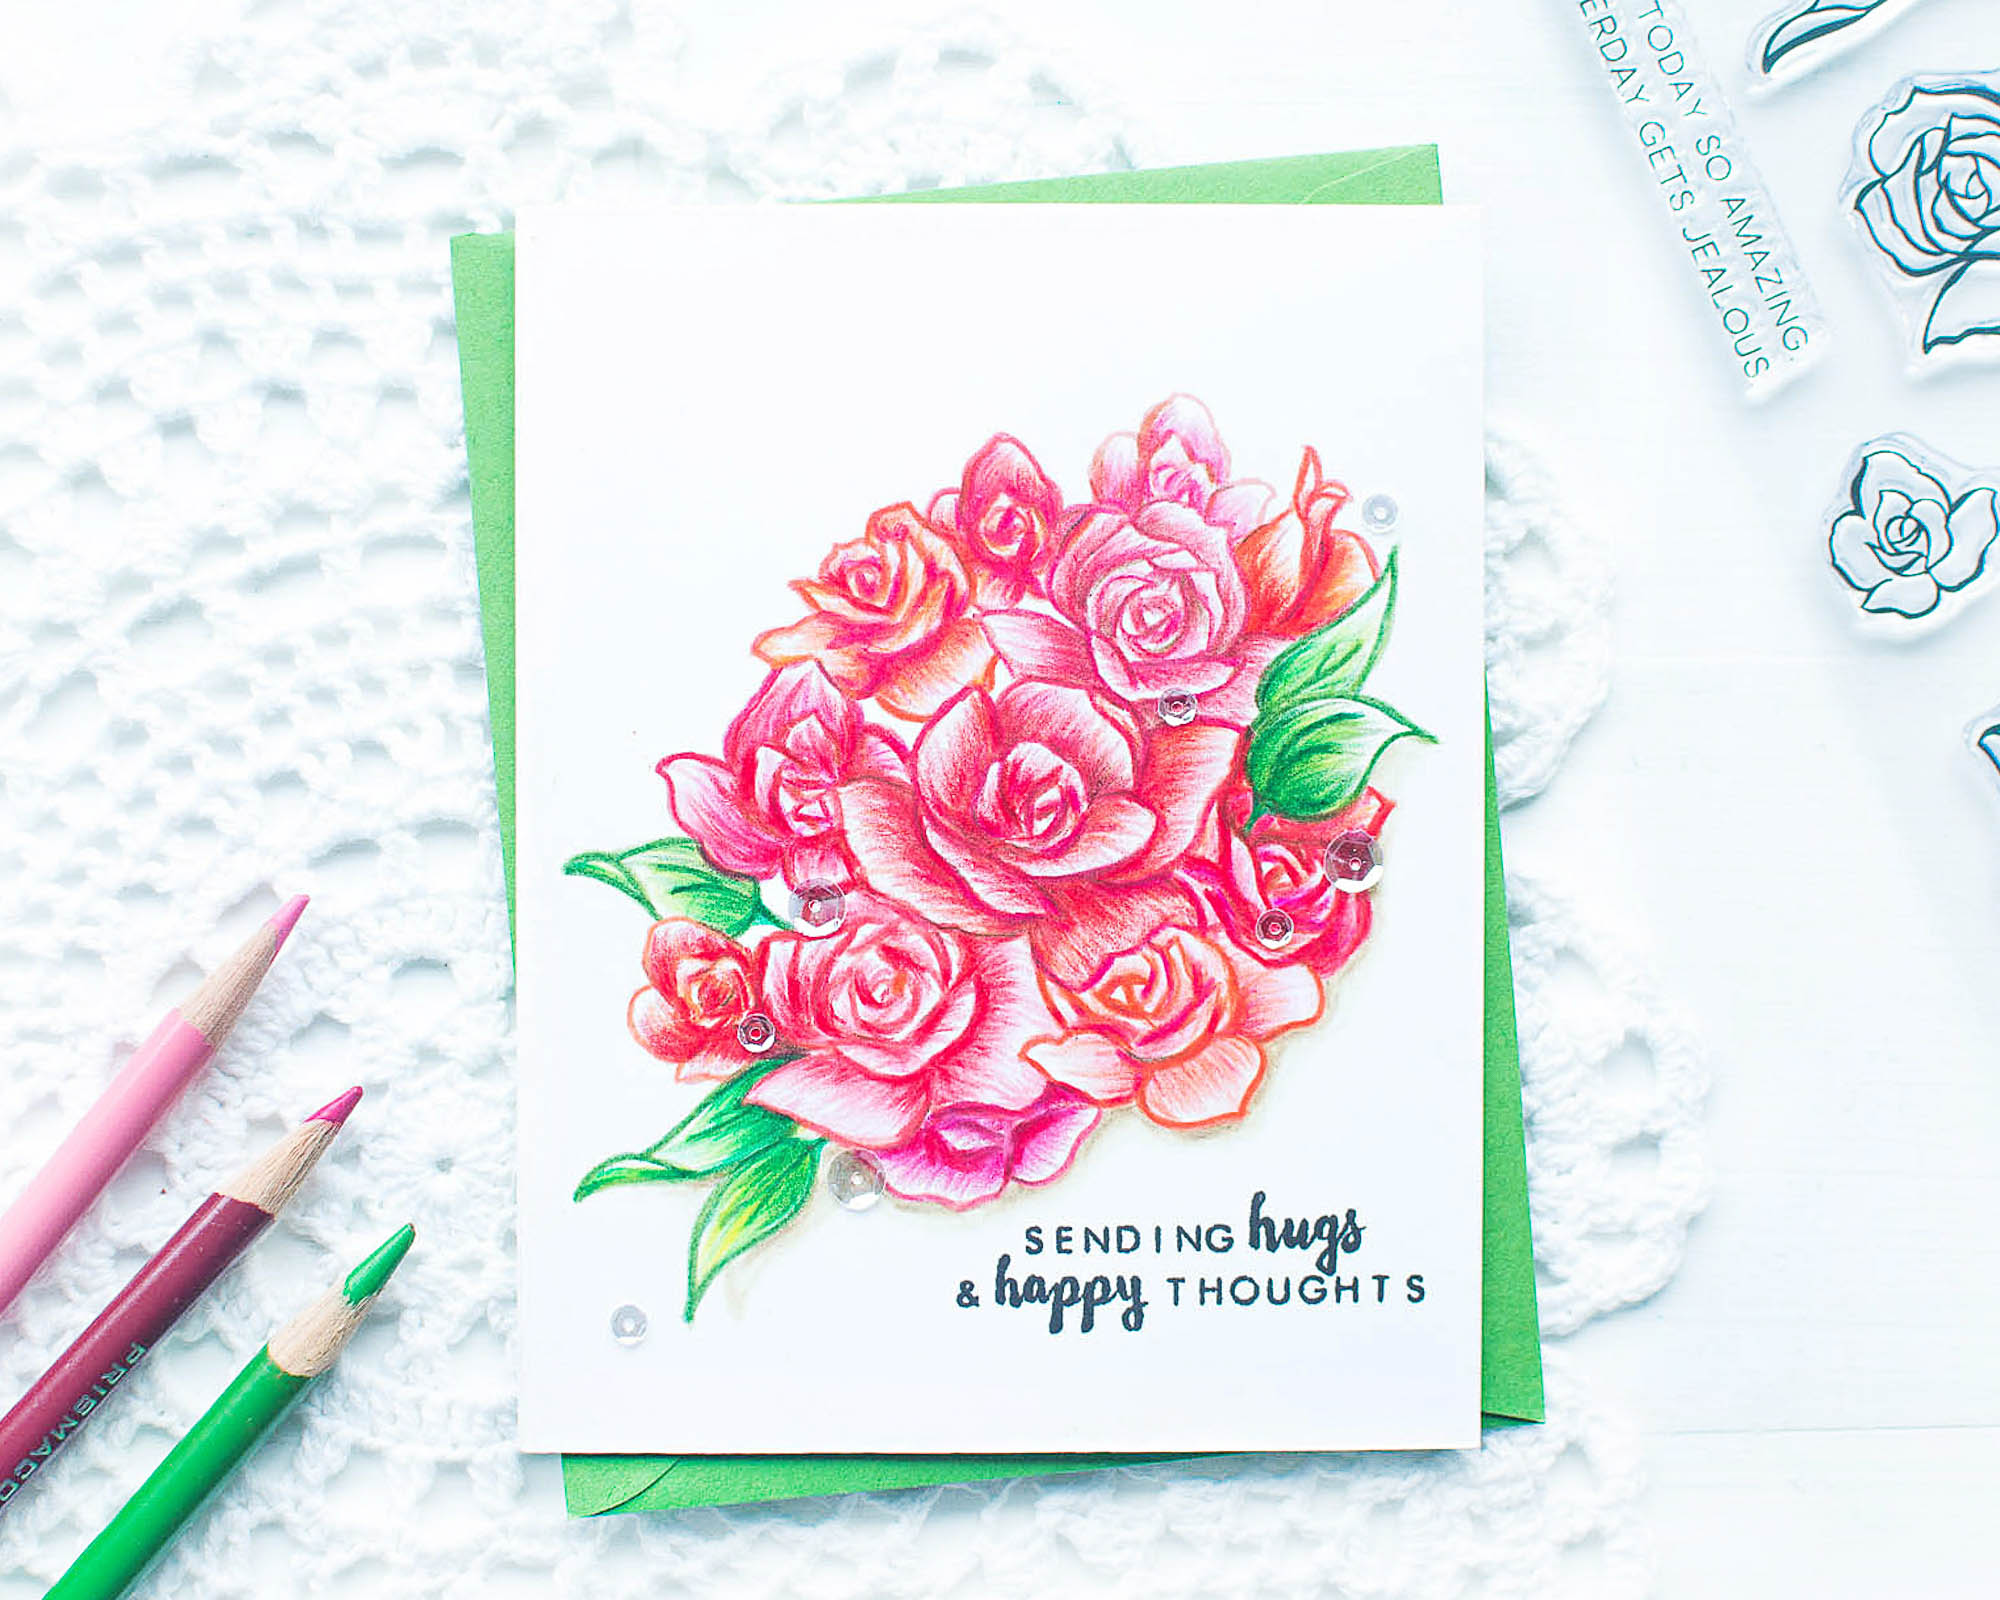 video-one-layer-floral-card-using-masking-technique-colored-pencils